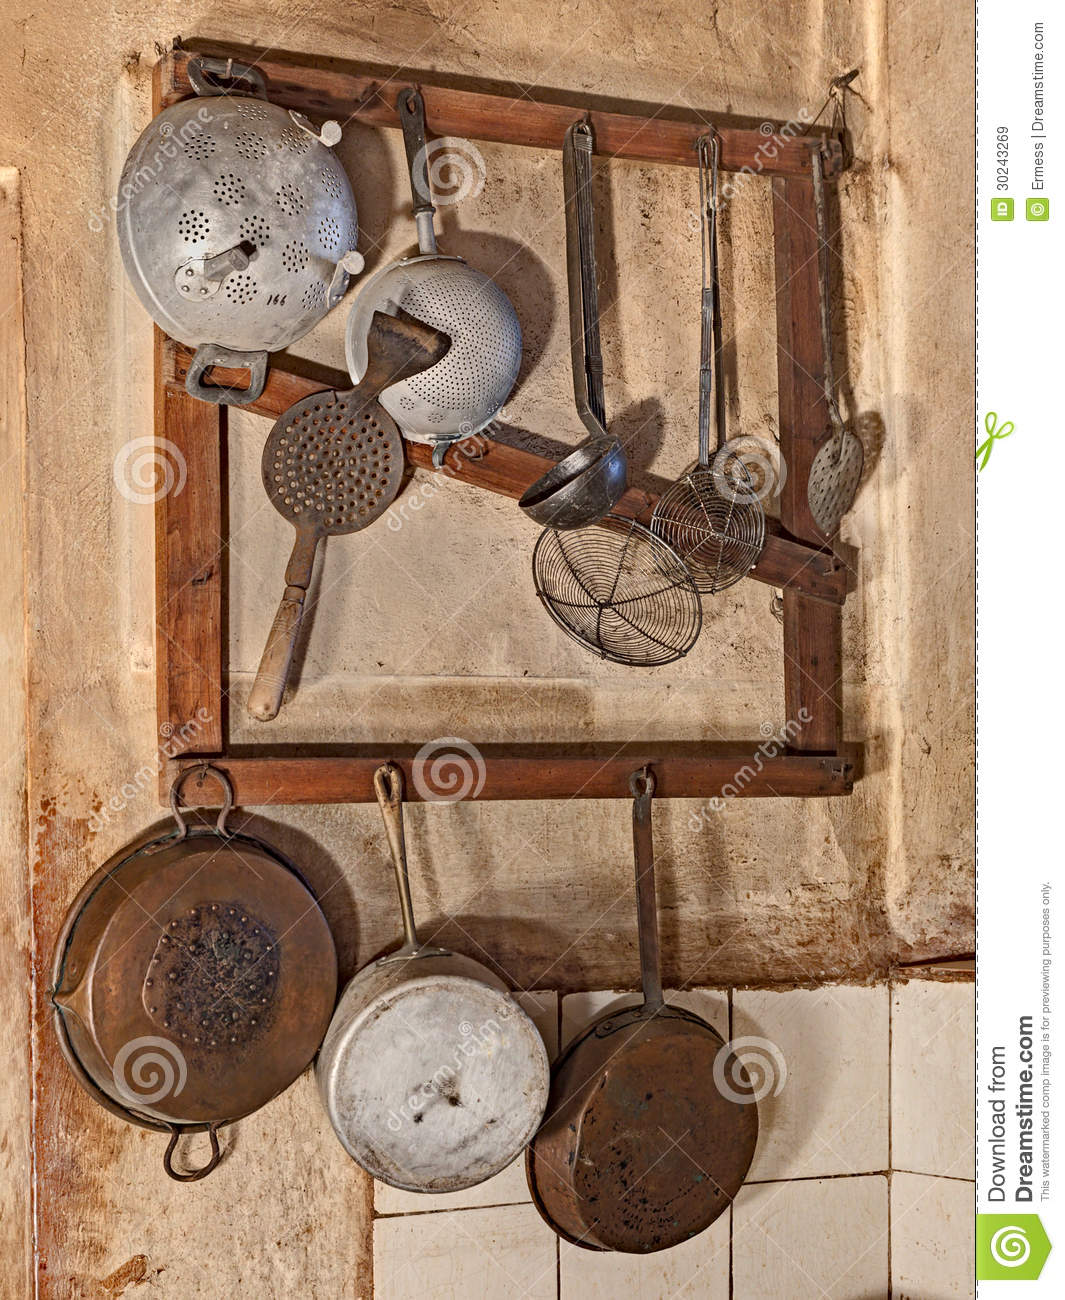 Old Kitchenware Royalty Free Stock Images